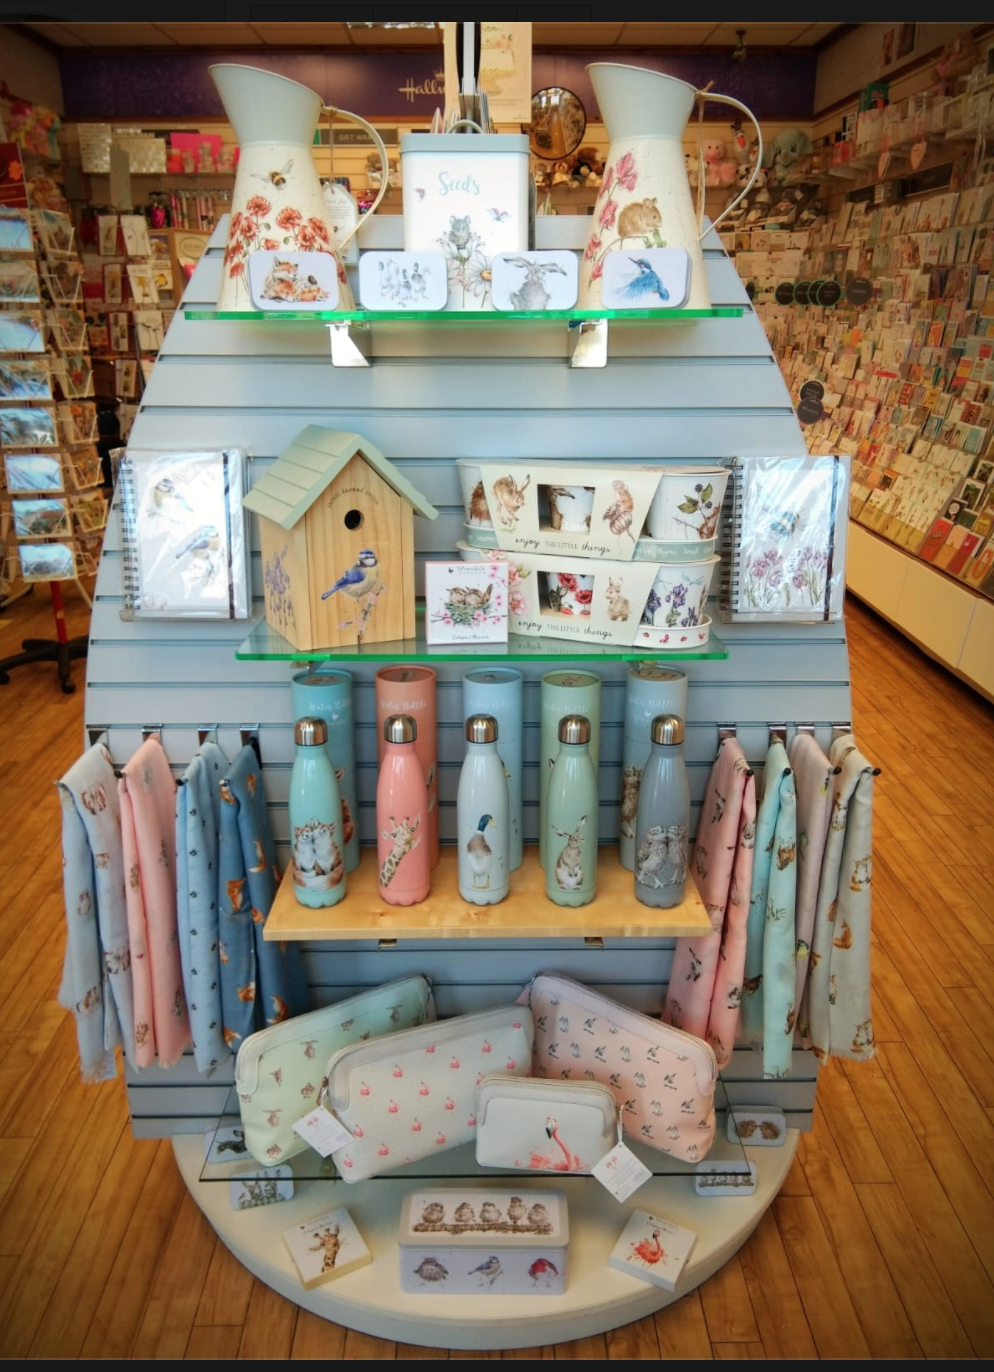 Above: A lovely new display of Wrendale products in Celebrations.